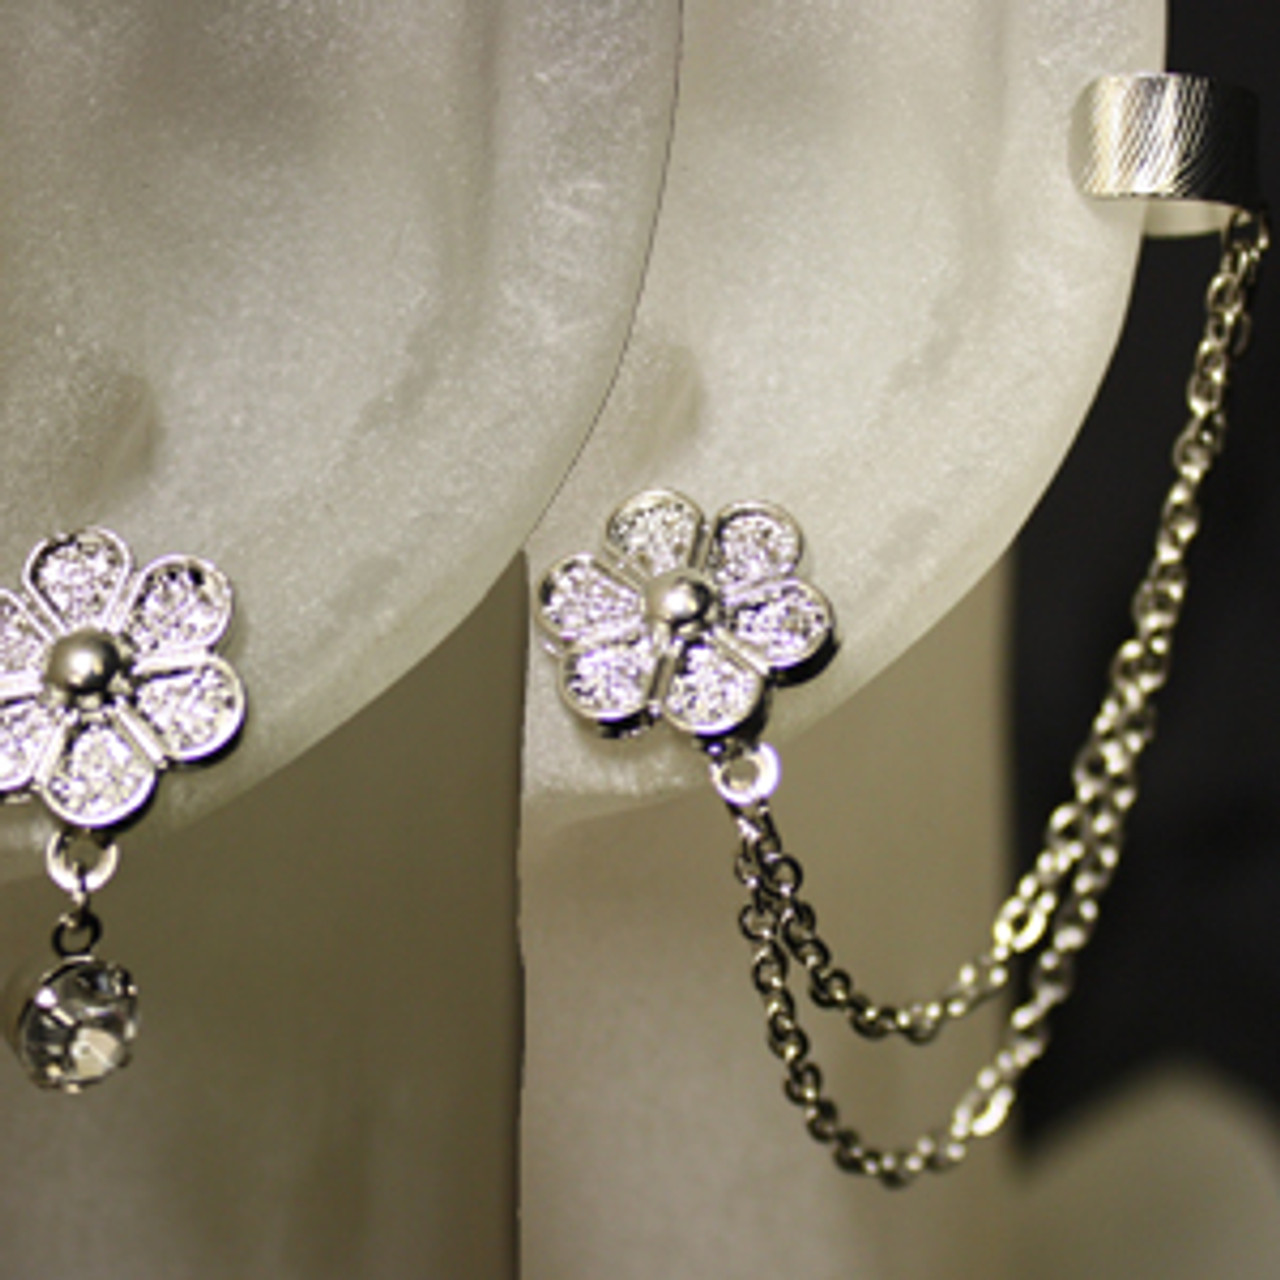 Daisy ear cuff set